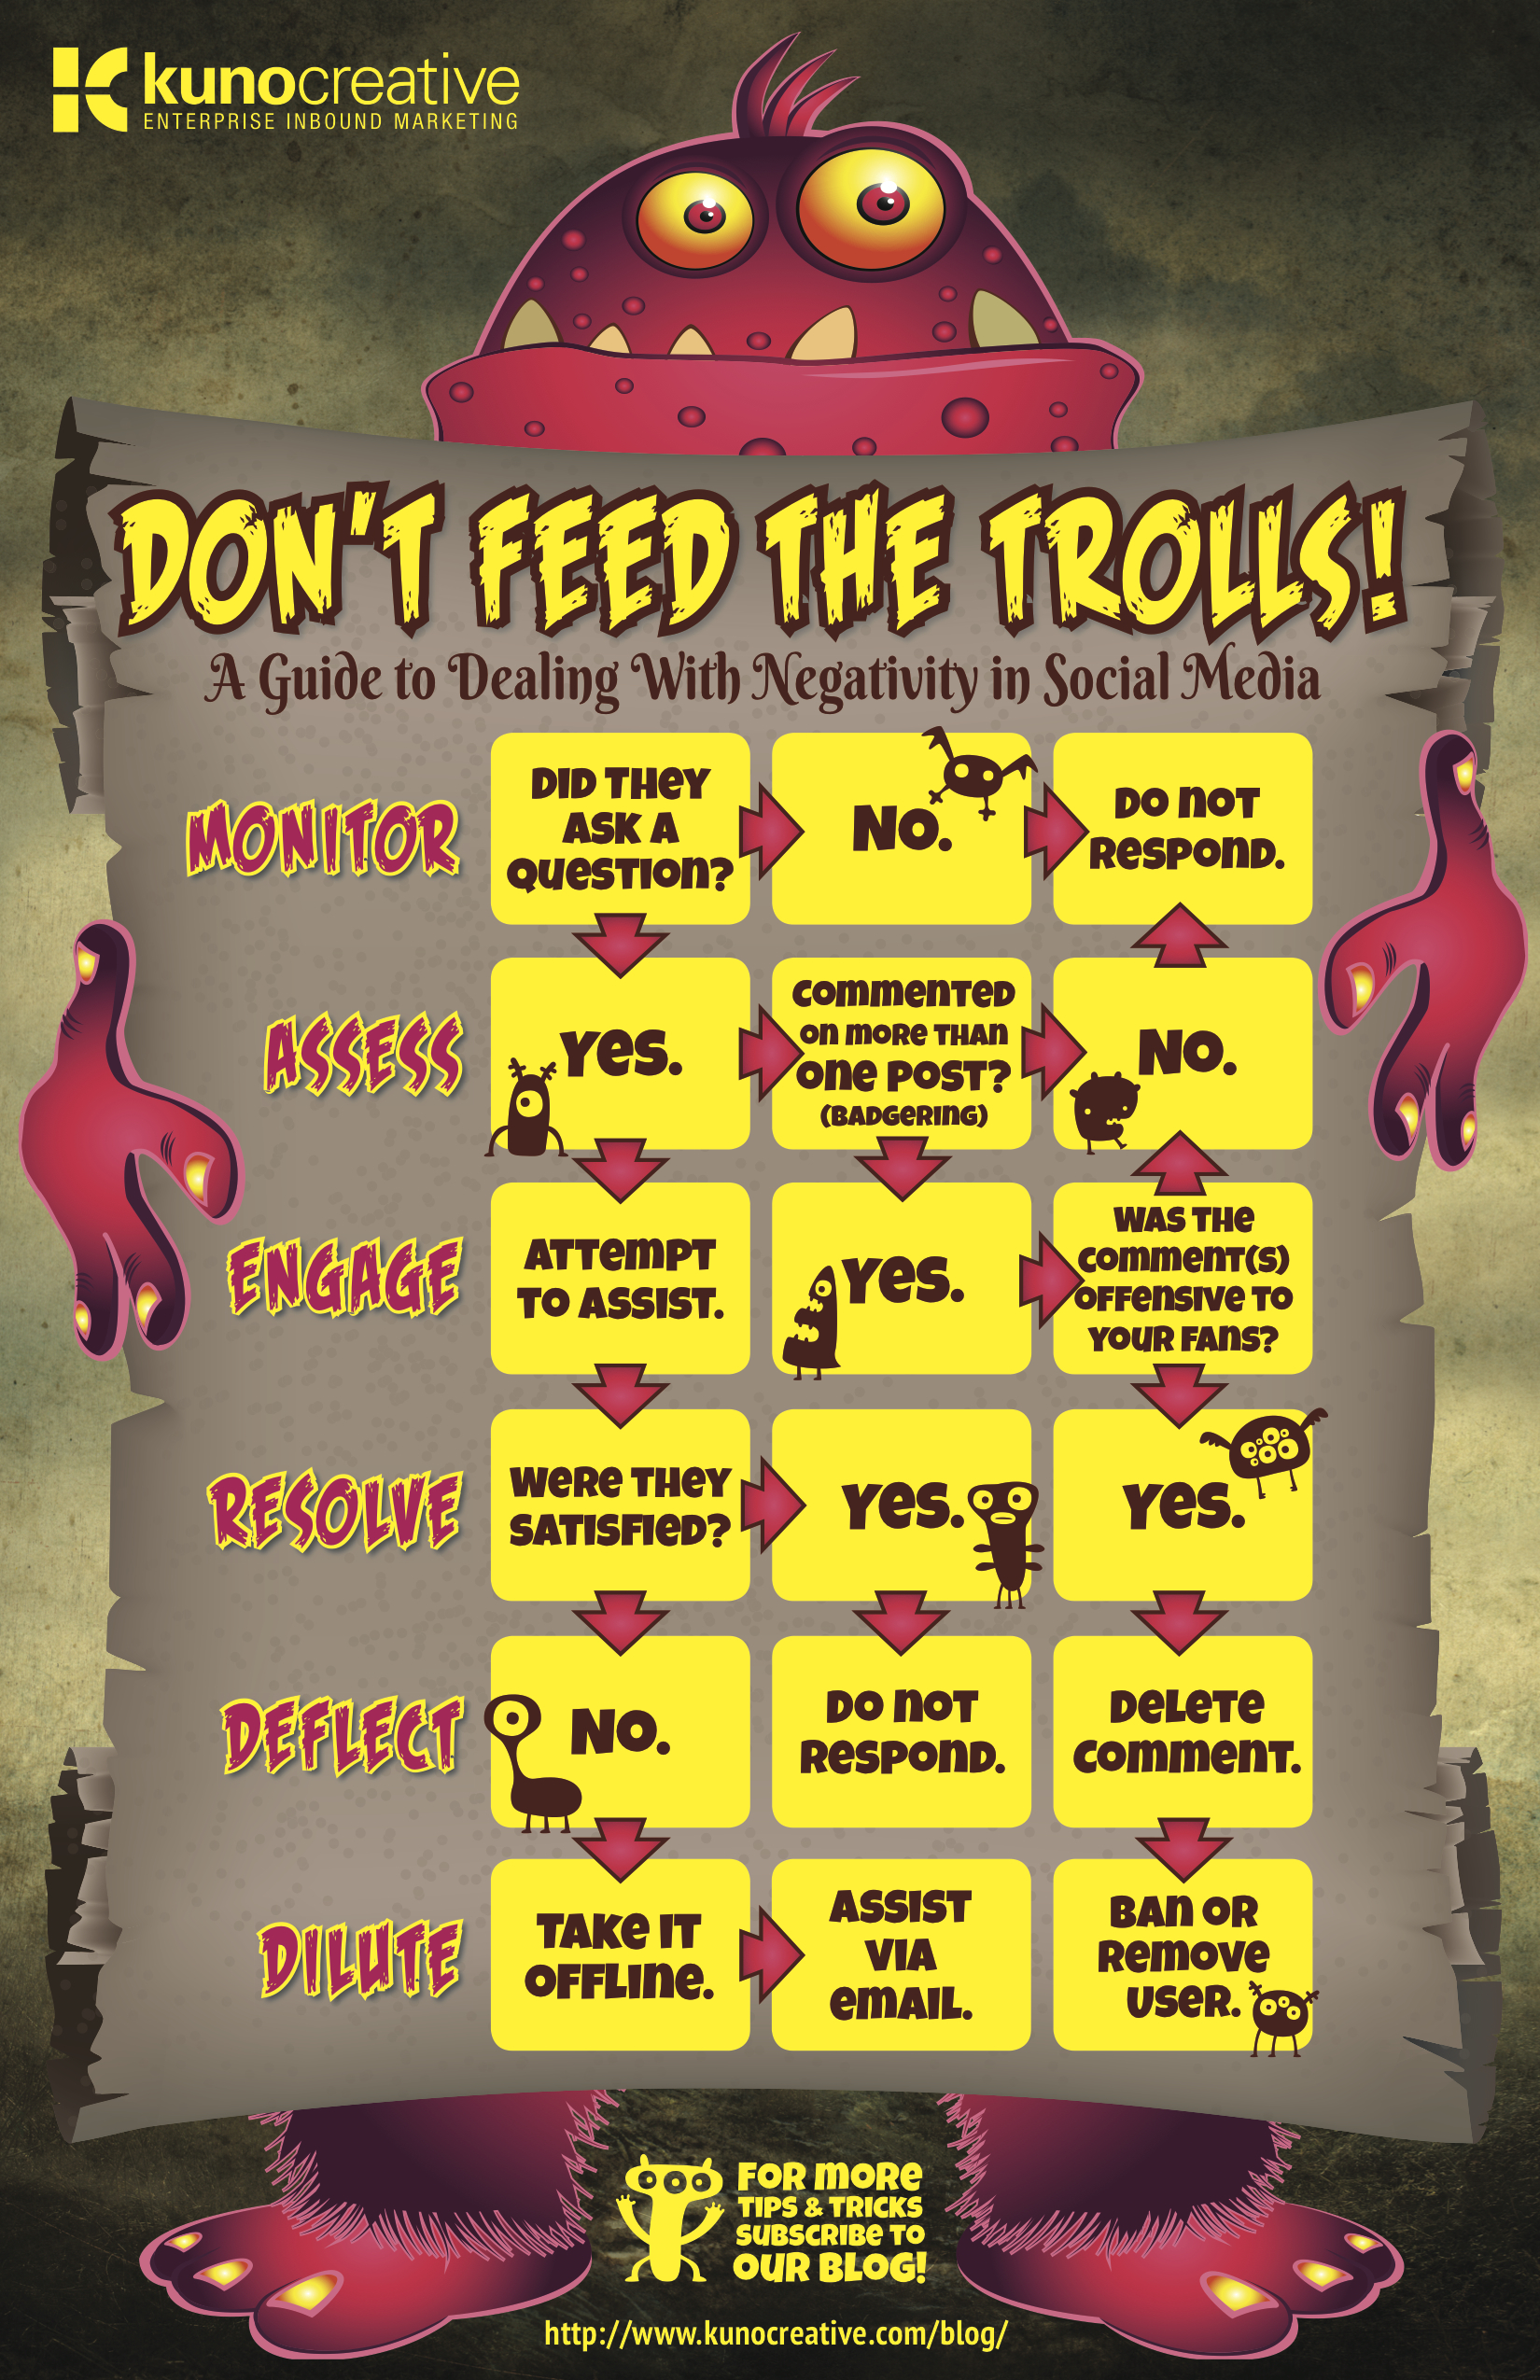 Don't Feed the Trolls! How to Manage Negativity in Social Media